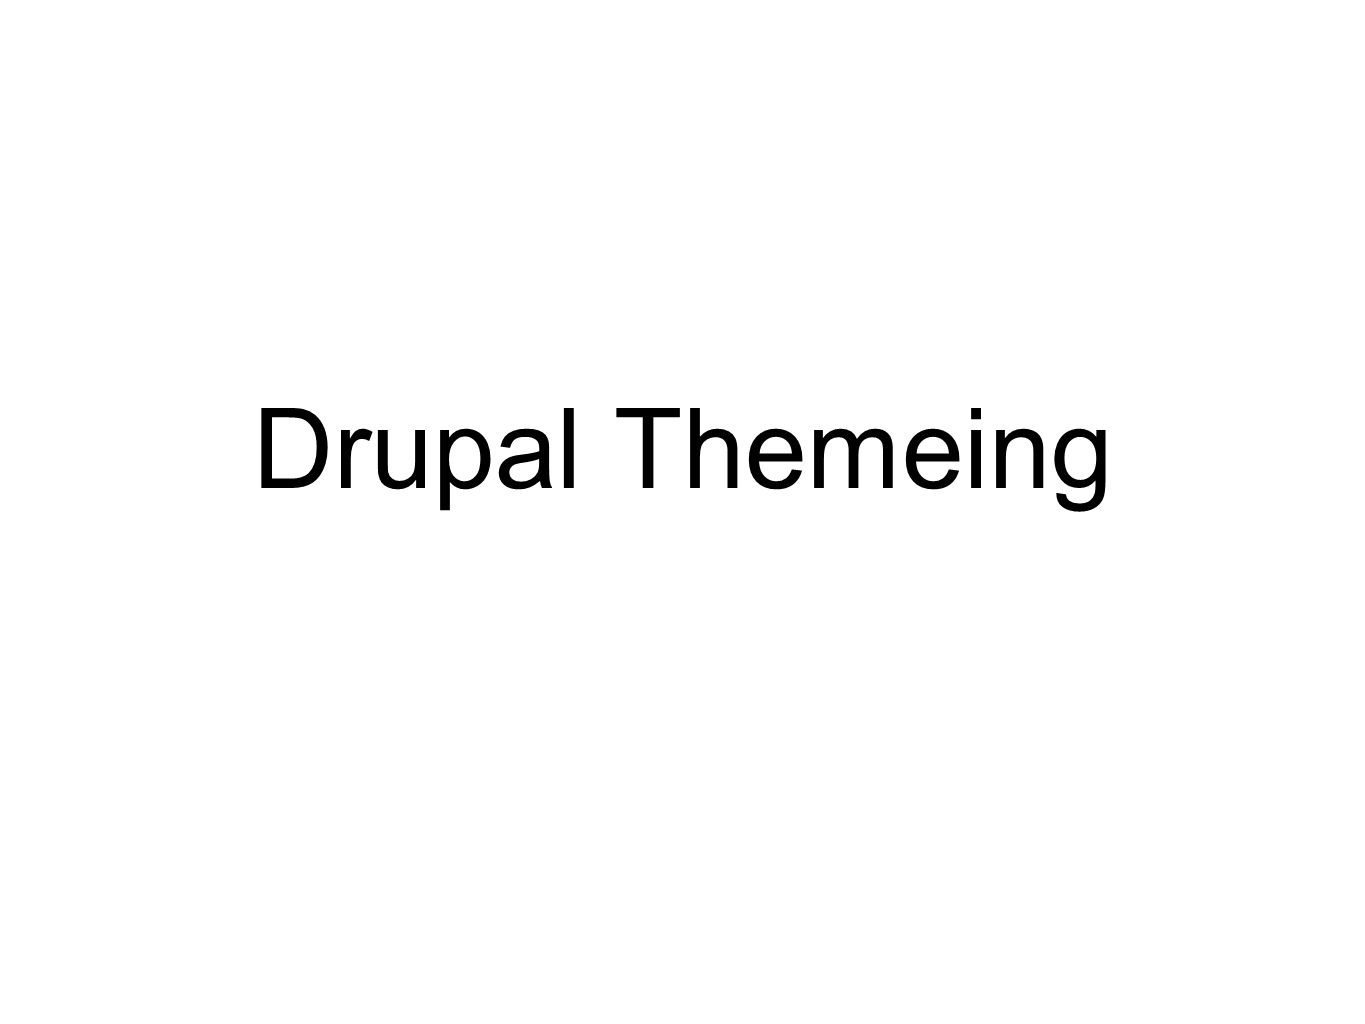 Drupal Themeing